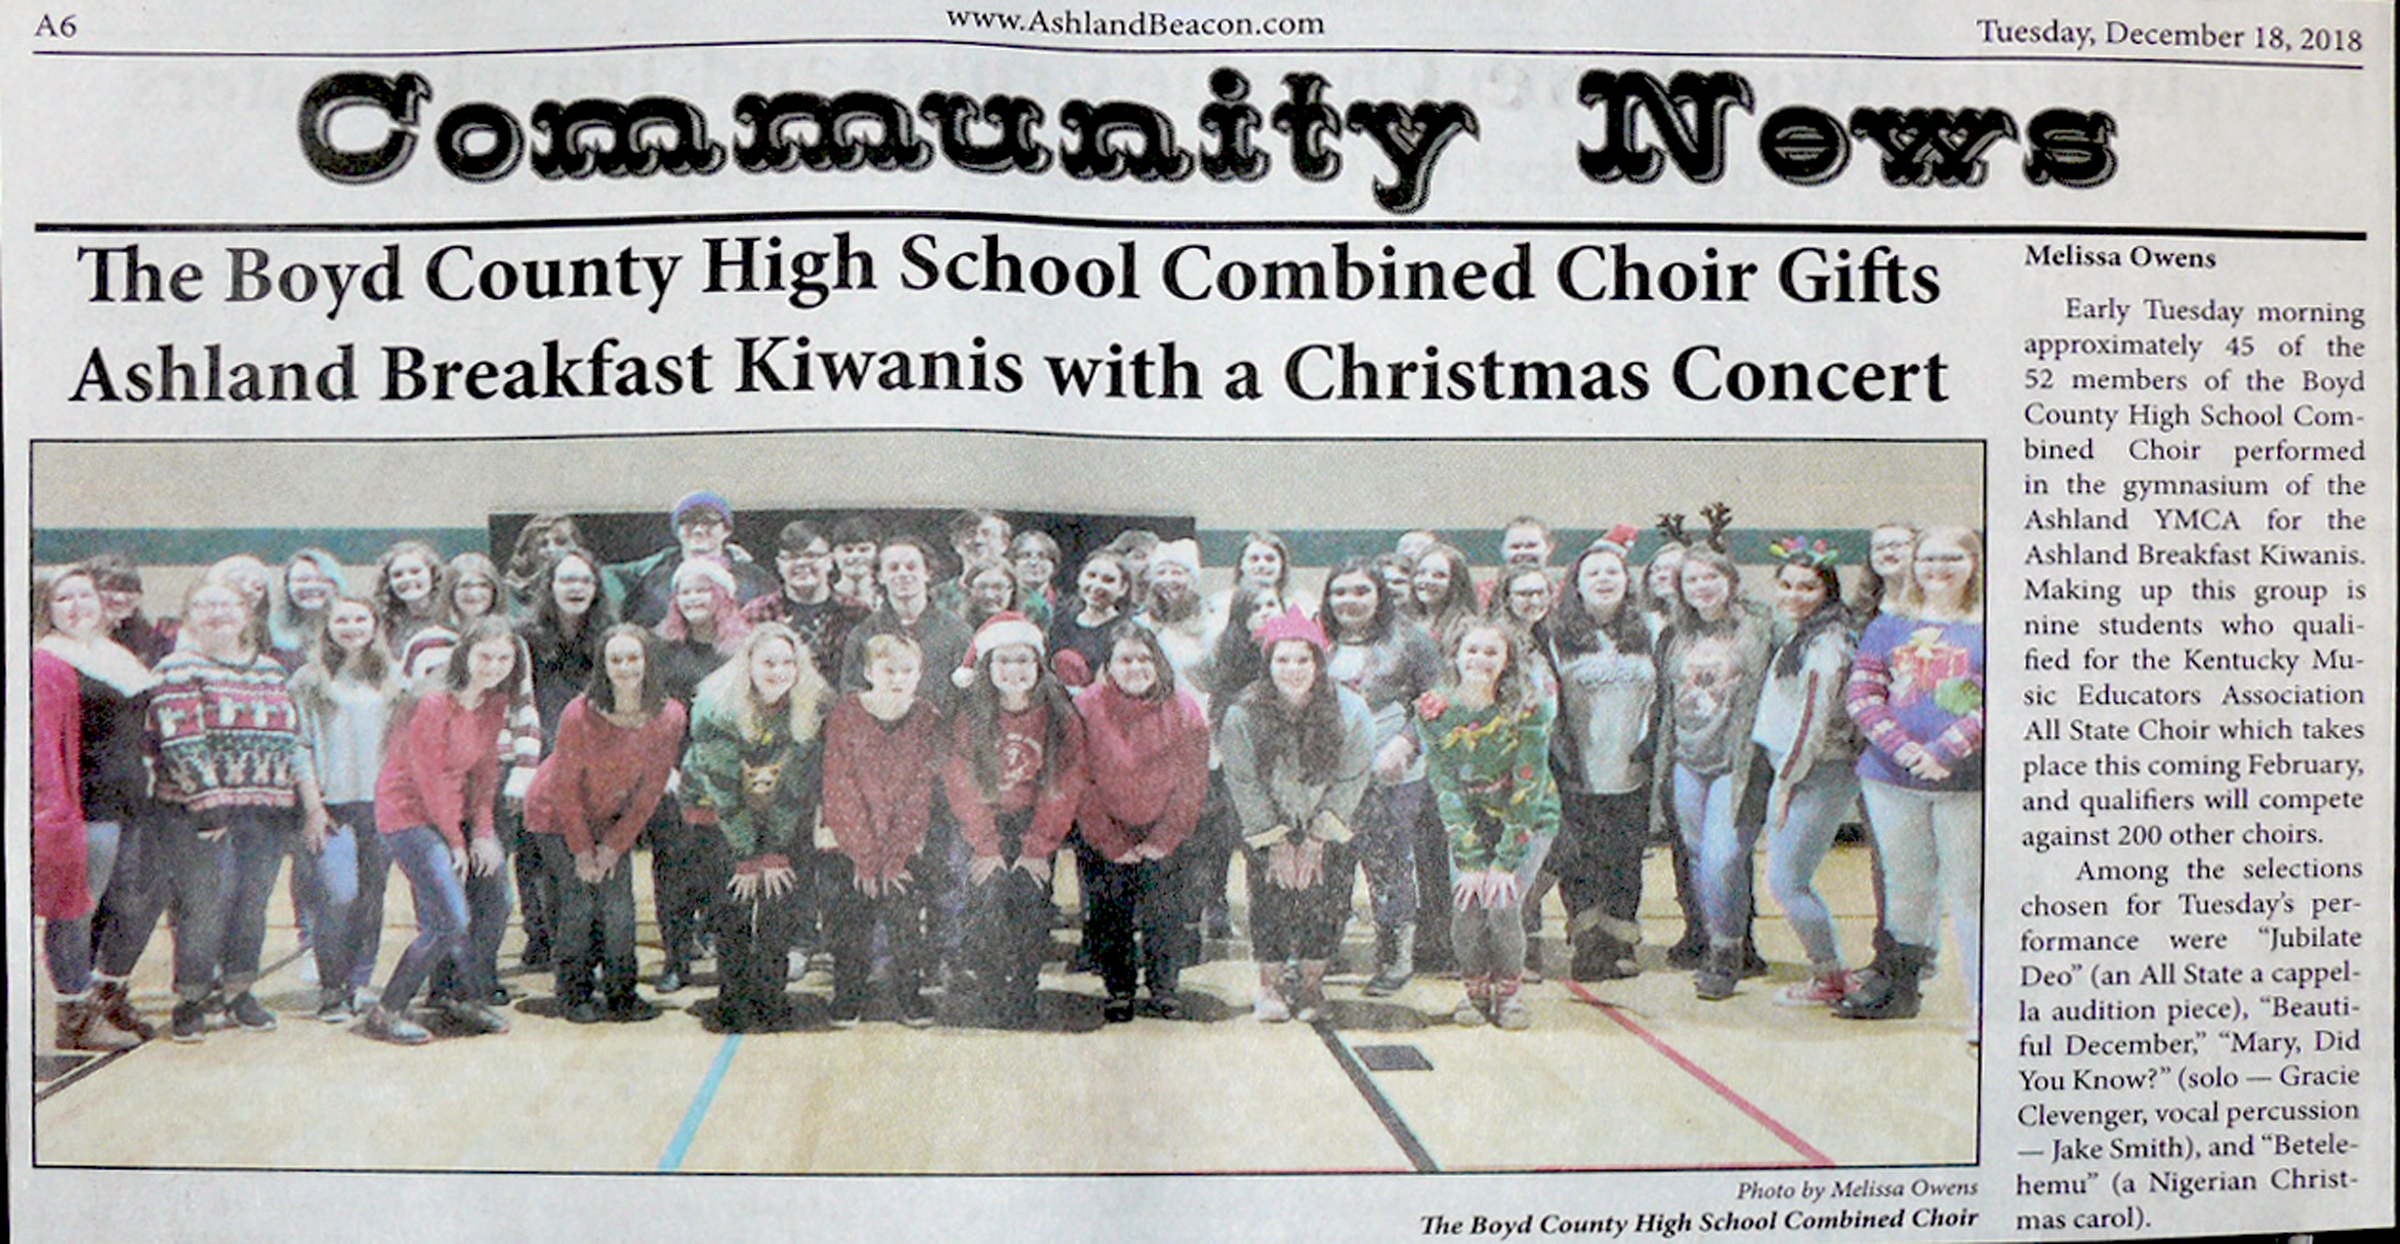 BCHS Combined Choir article from the GAB.